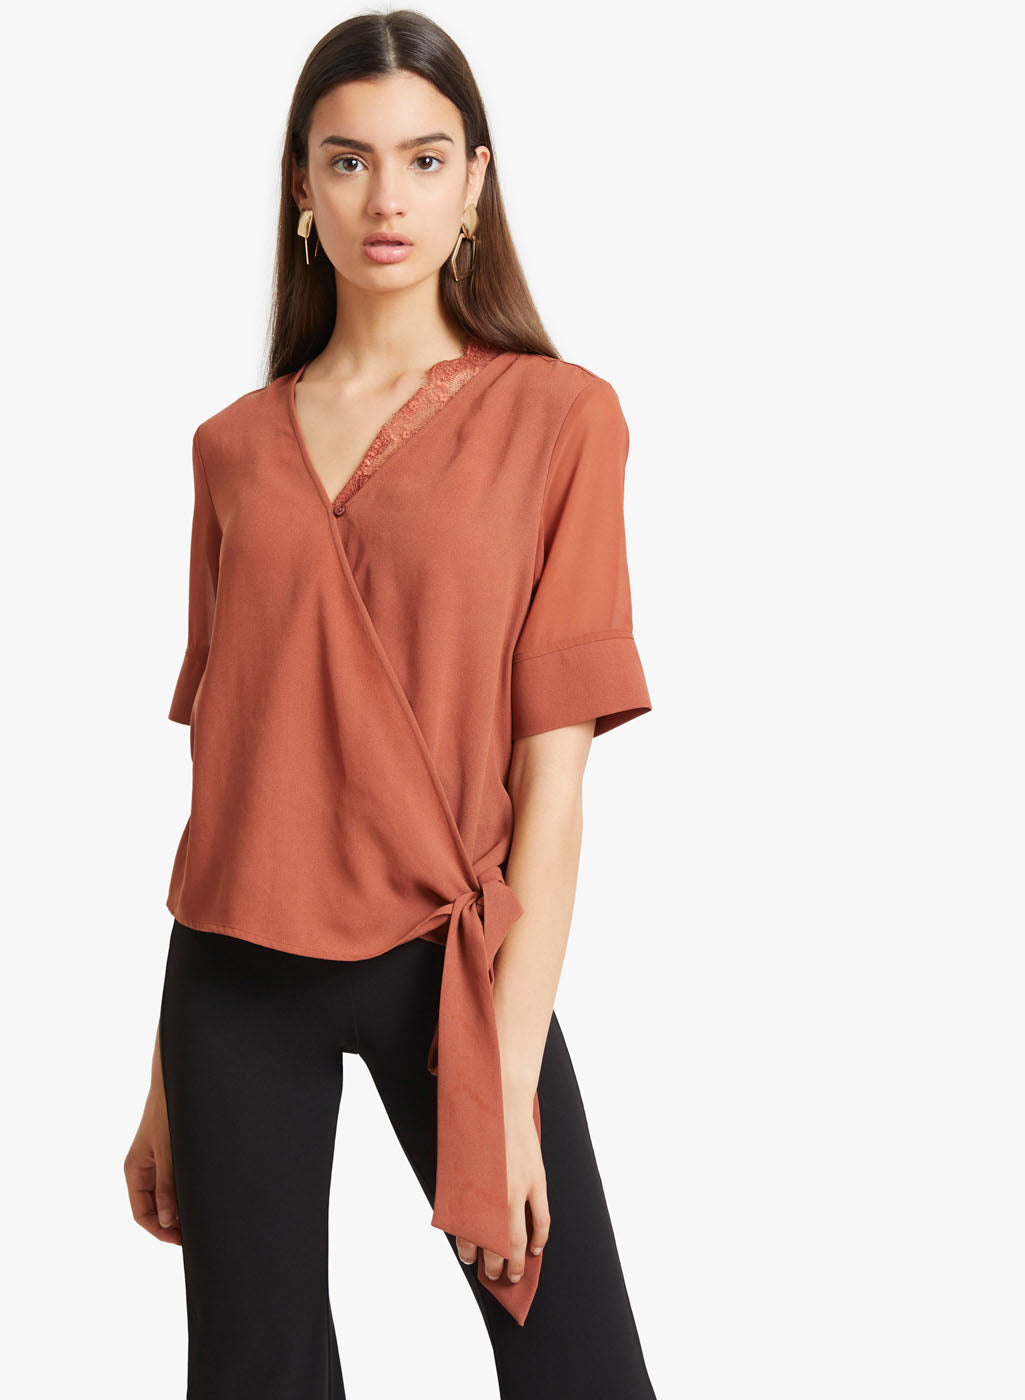 Half Sleeves Top With Eye Lash